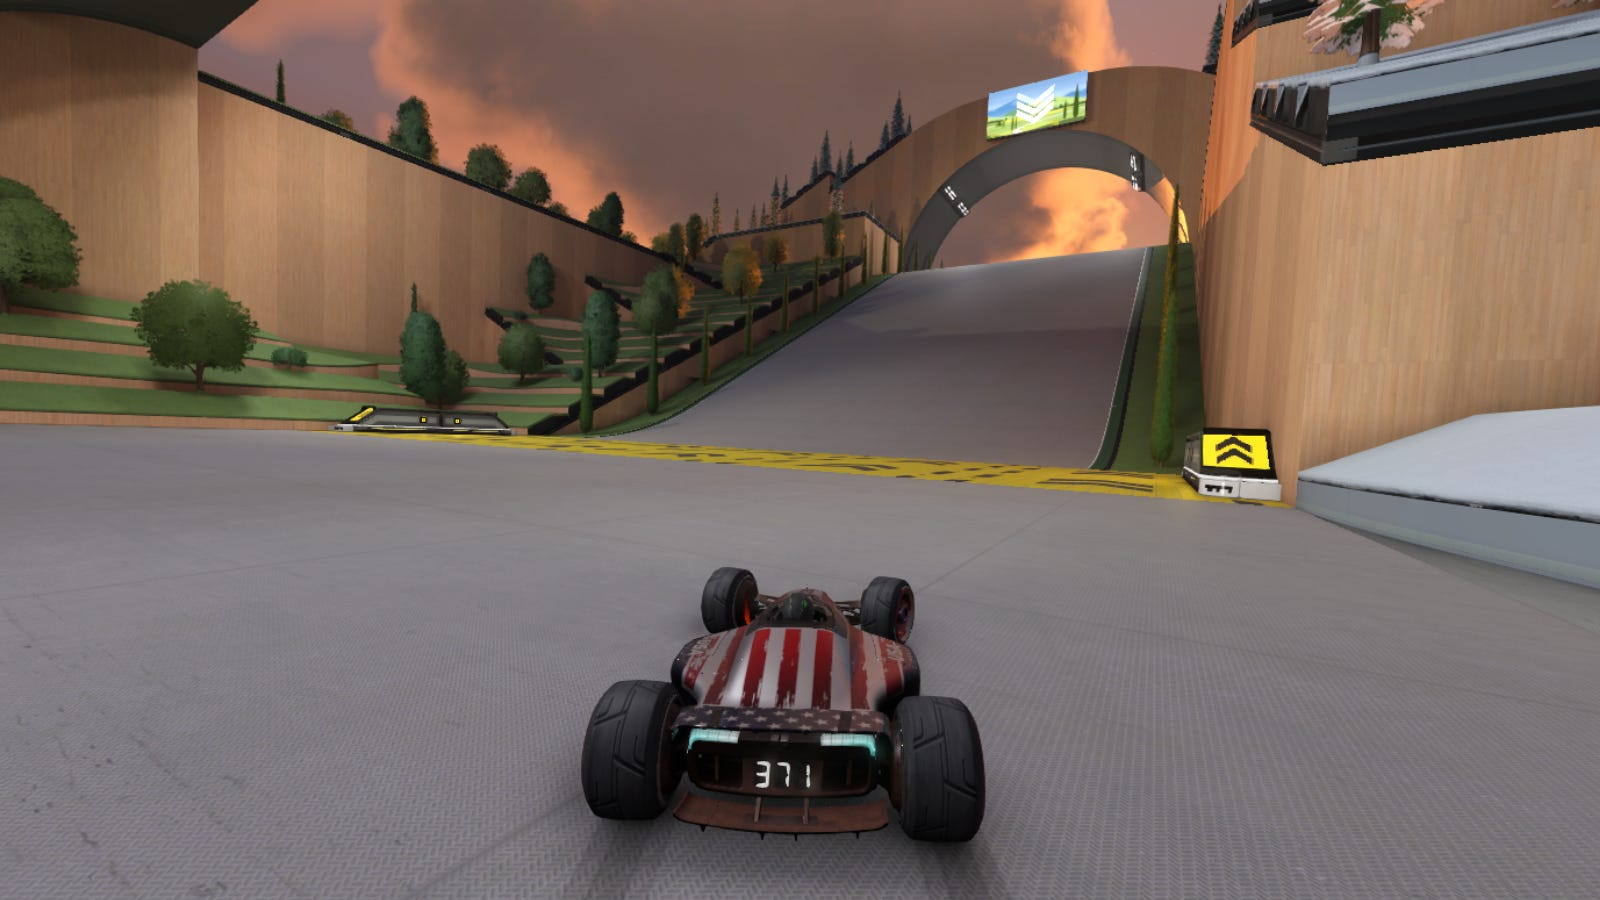 Player perspective racing in 'Trackmania'